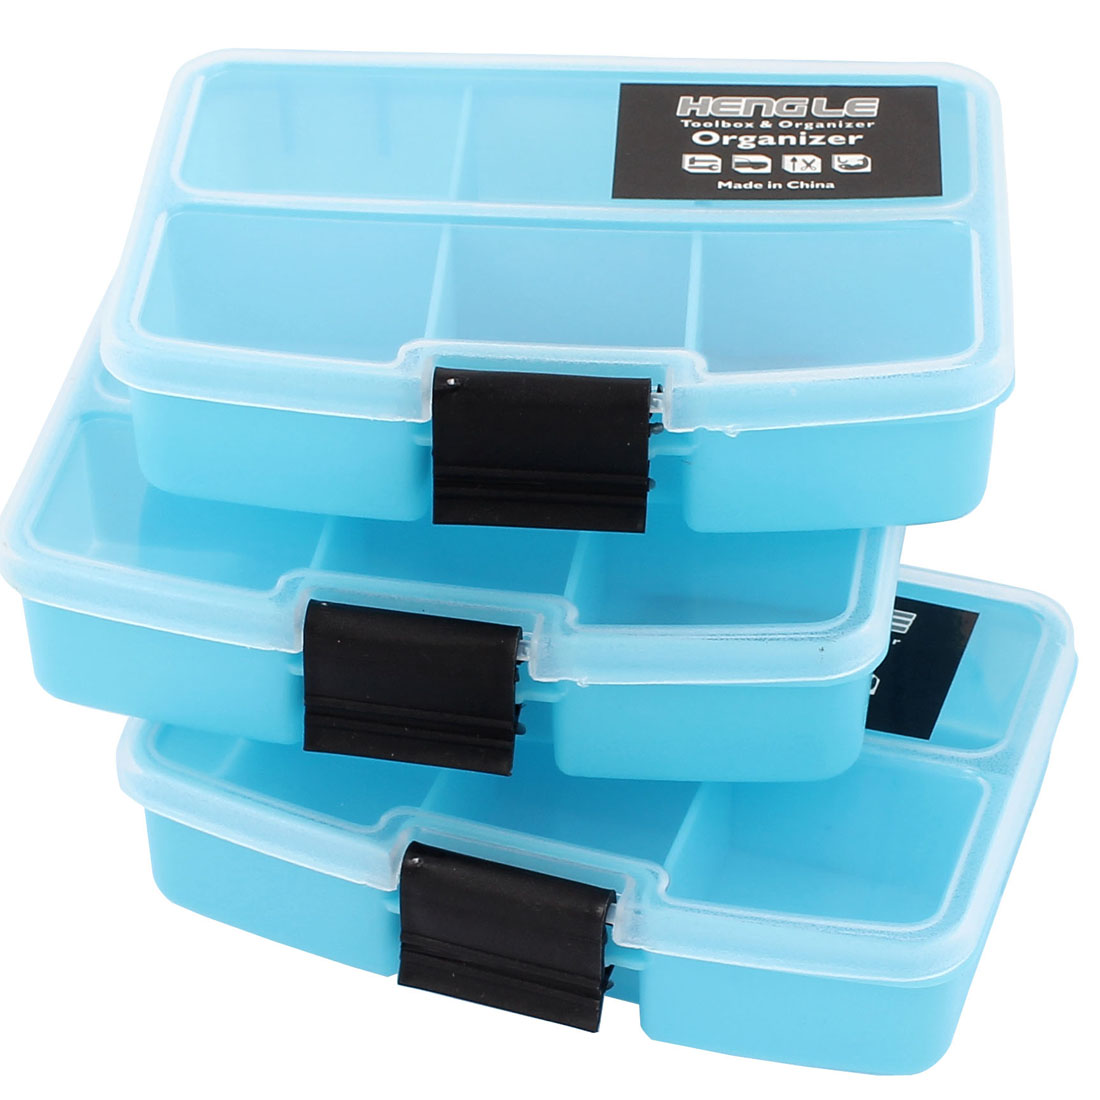 Blue Crafts Jewellery Holder Organizer Storage Box Case 6 Compartments 3 Pcs